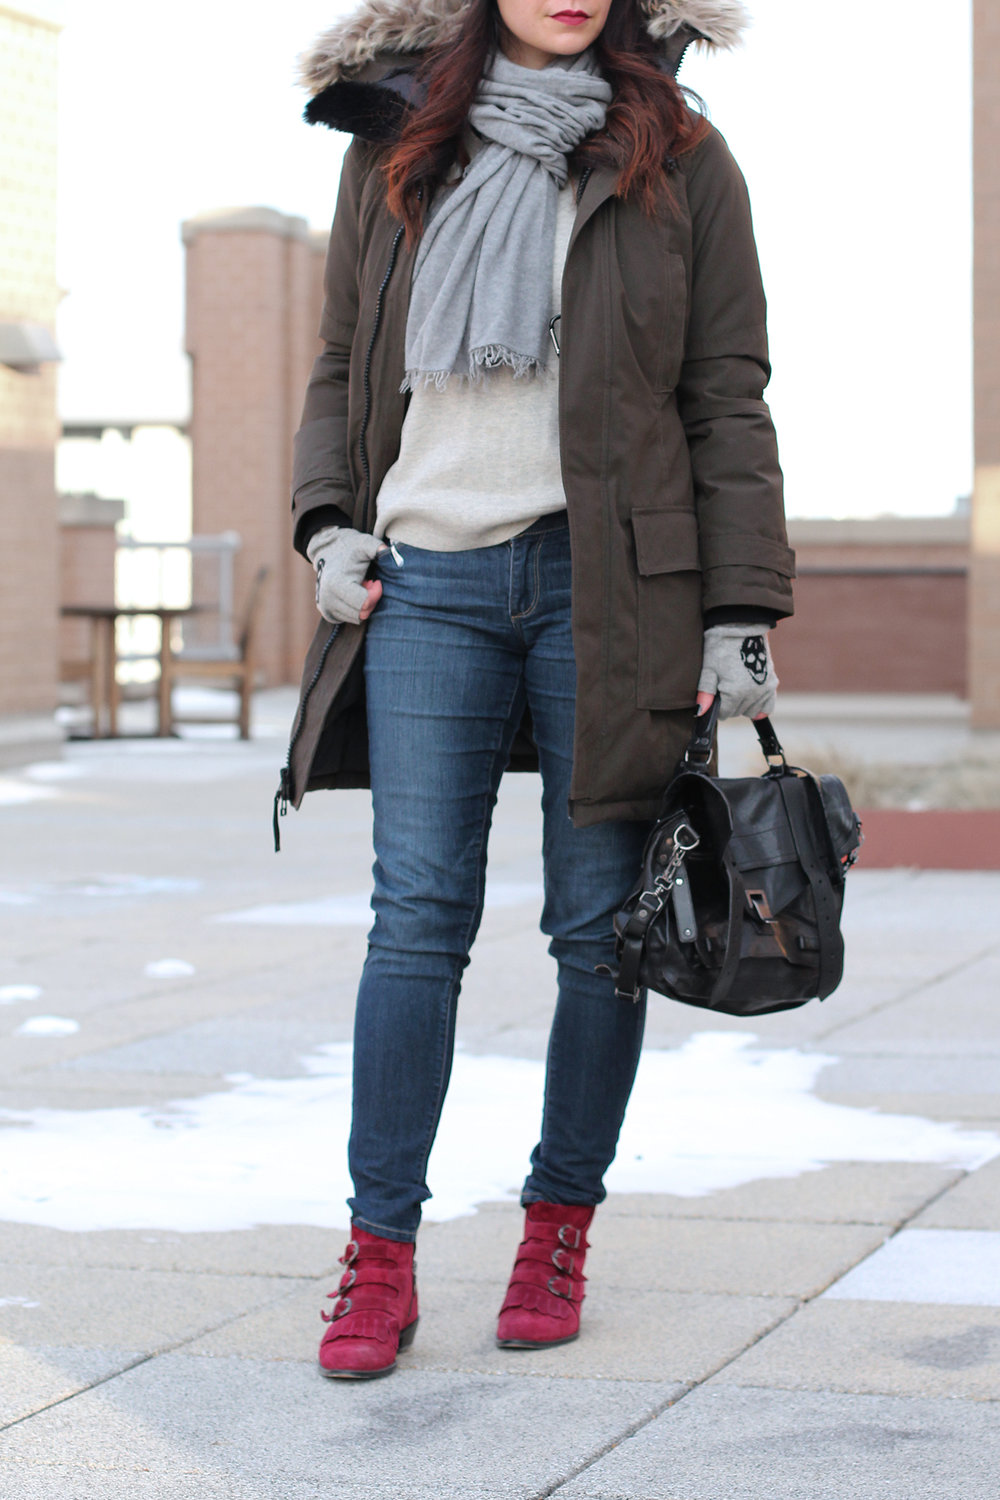 Gap Sweater, Aritzia Parka Jacket, Cashmere Scarf, Warm Winter Outfit